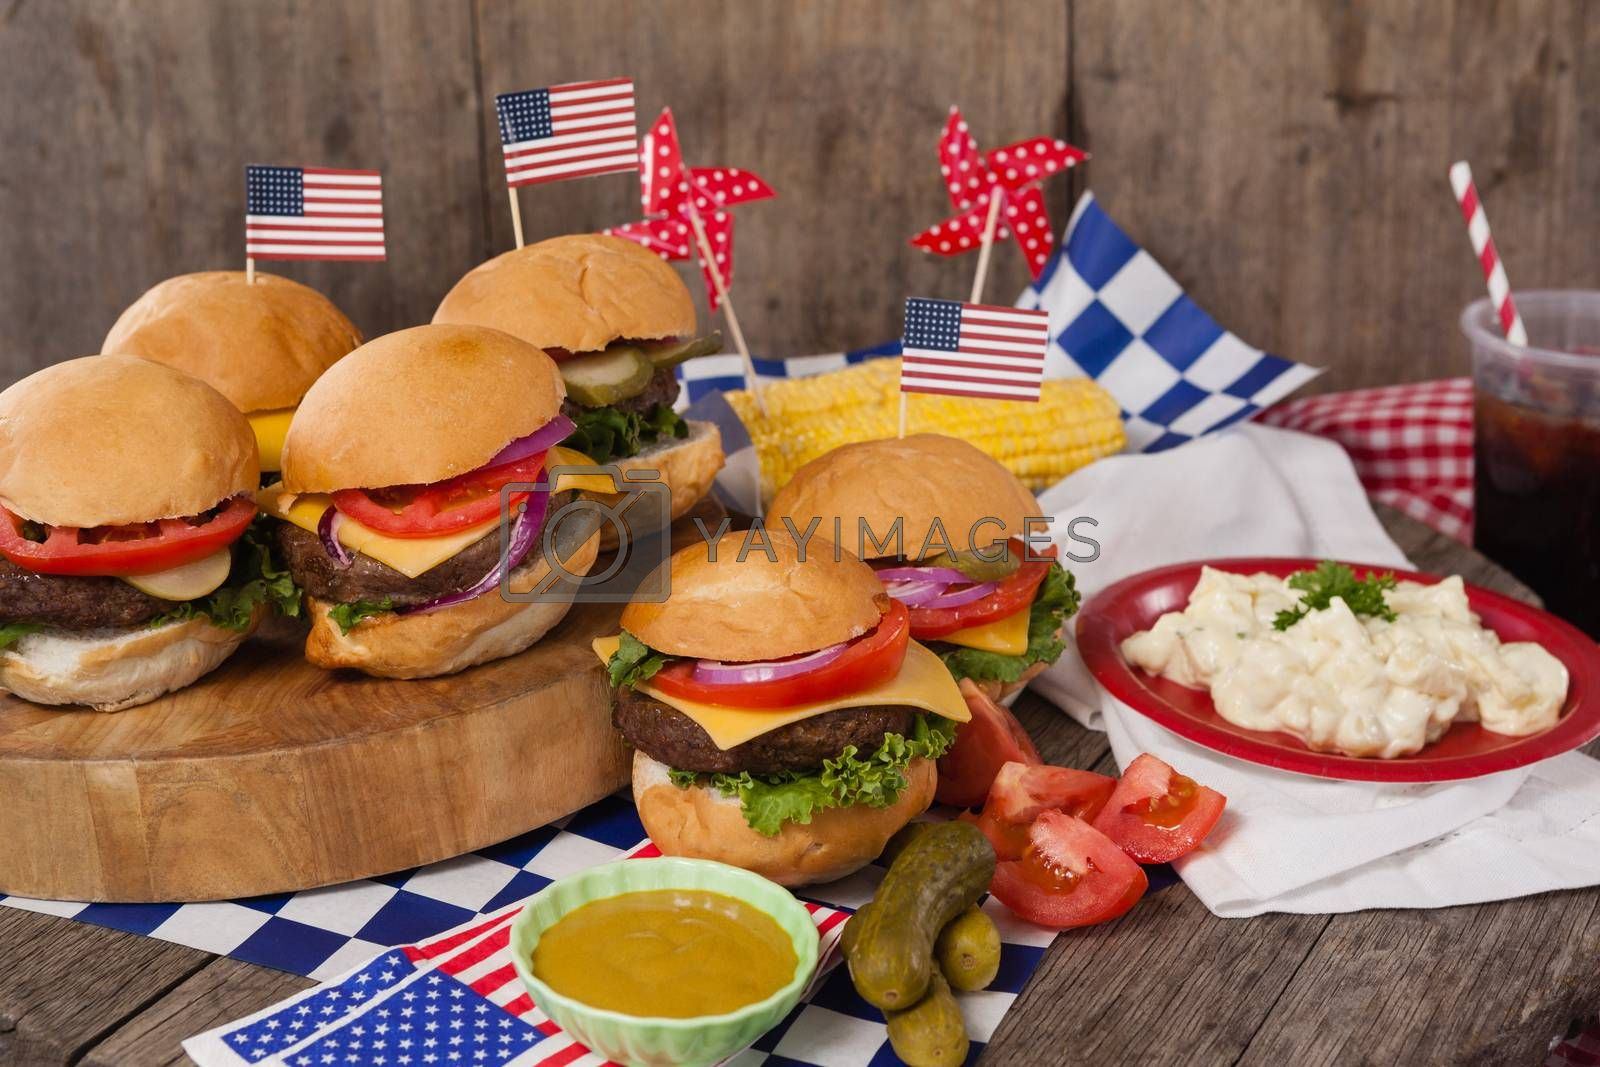 Snacks decorated with 4th july theme on wooden table